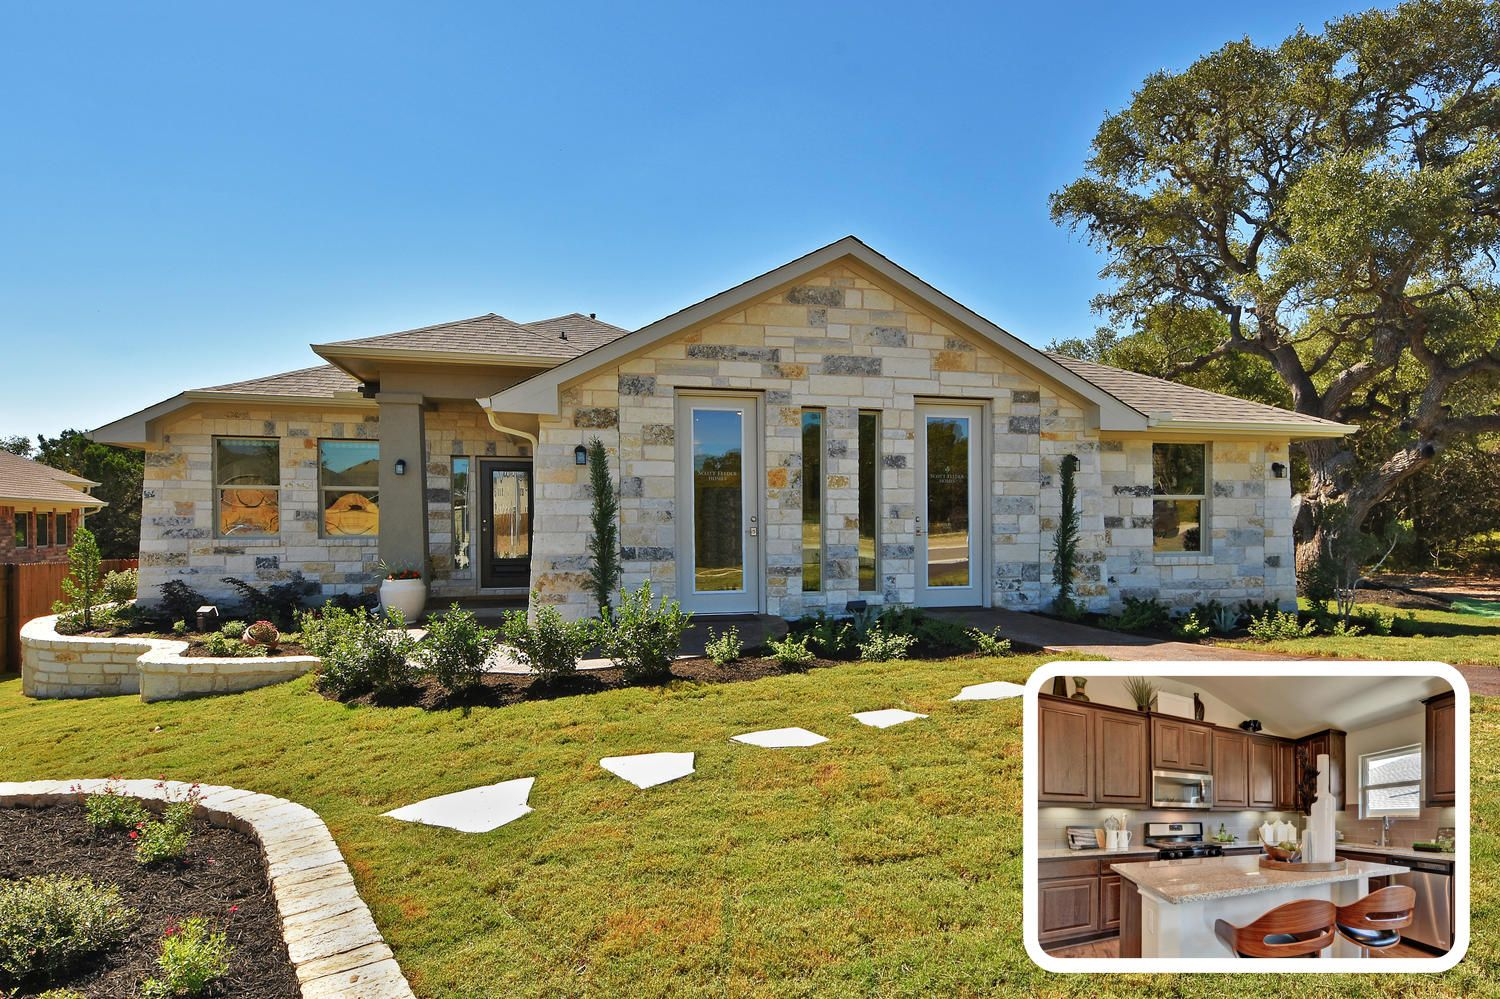 Houses For Sale In Austin Tx House New Homes For Sale New Homes